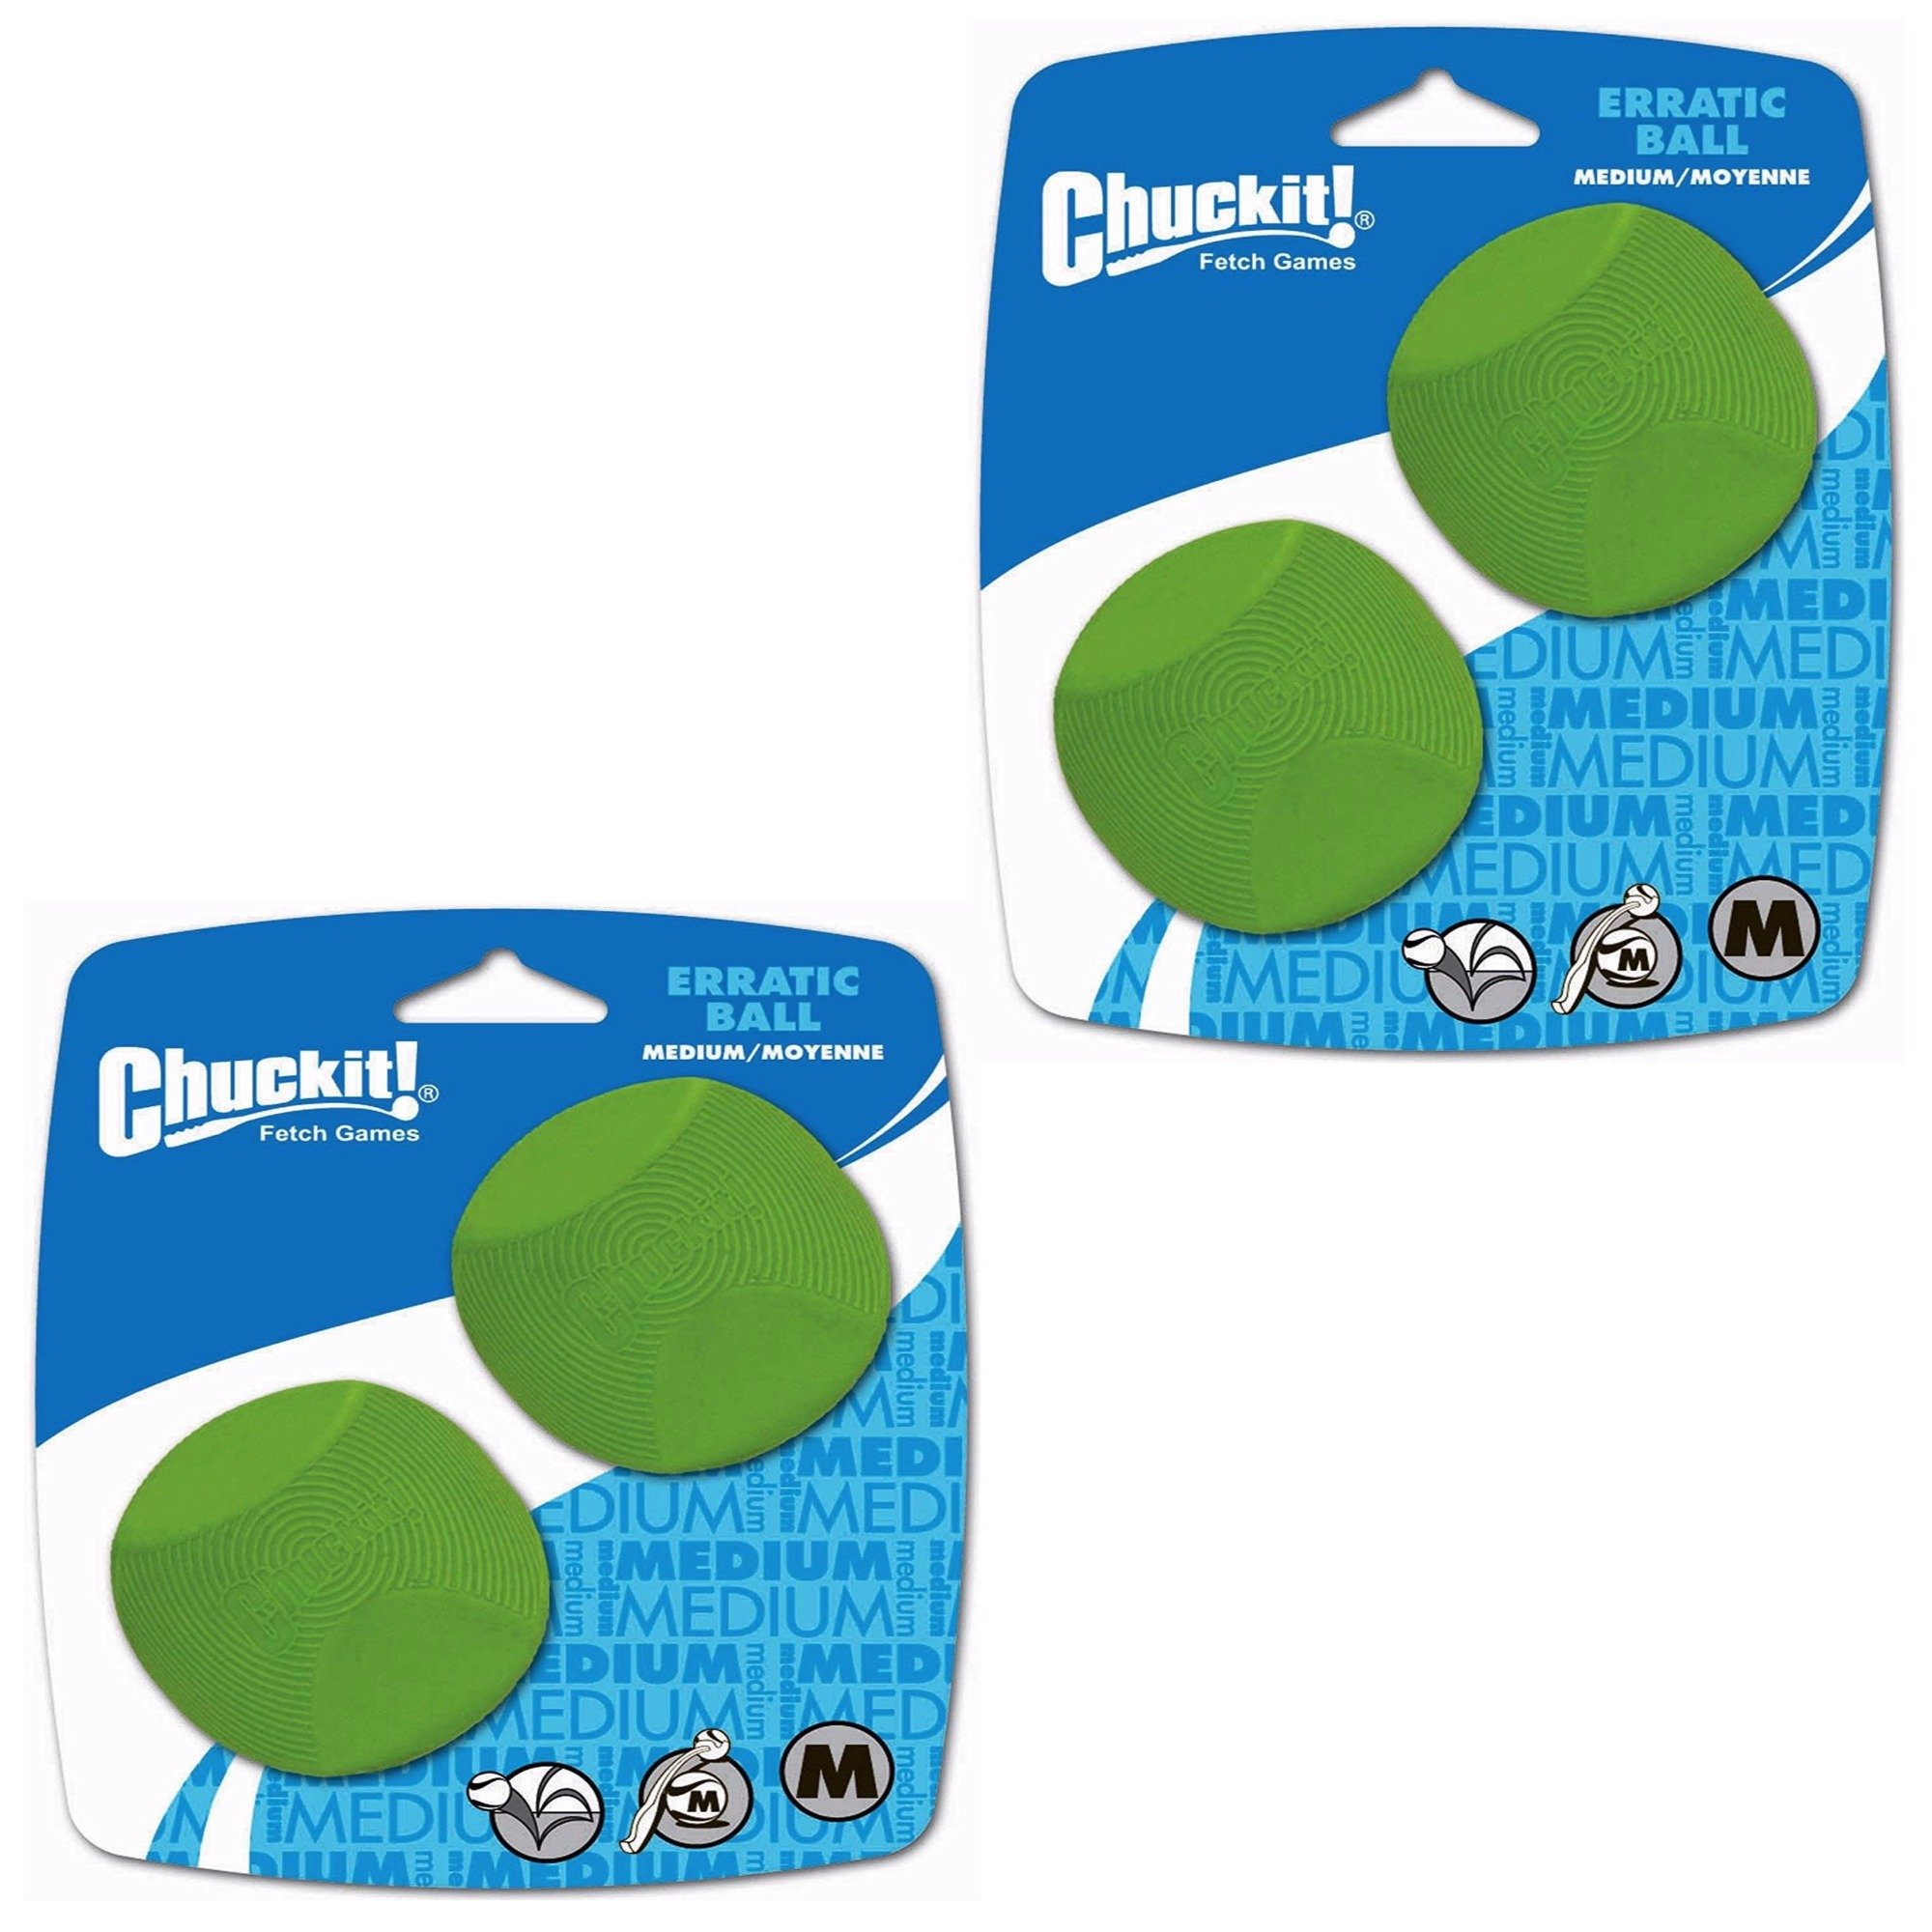 Chuckit! Dog Fetch Toy ERRATIC BALL Unpredictable Bounce Fits Launcher MED 4Ball